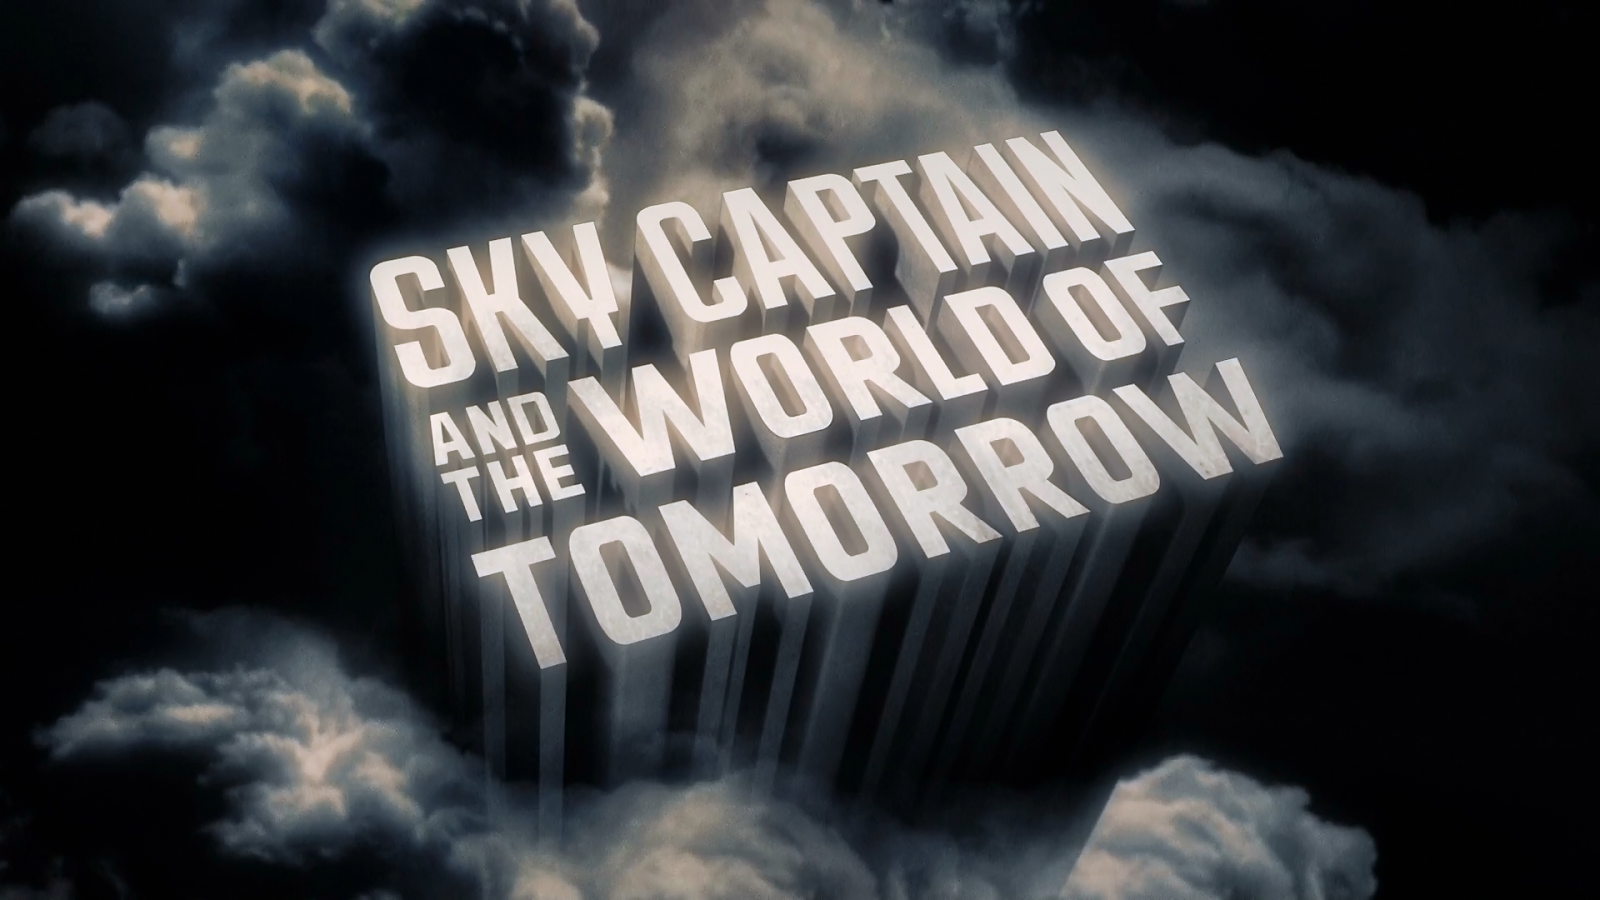 Sky Captain and the World of Tomorrow title screen